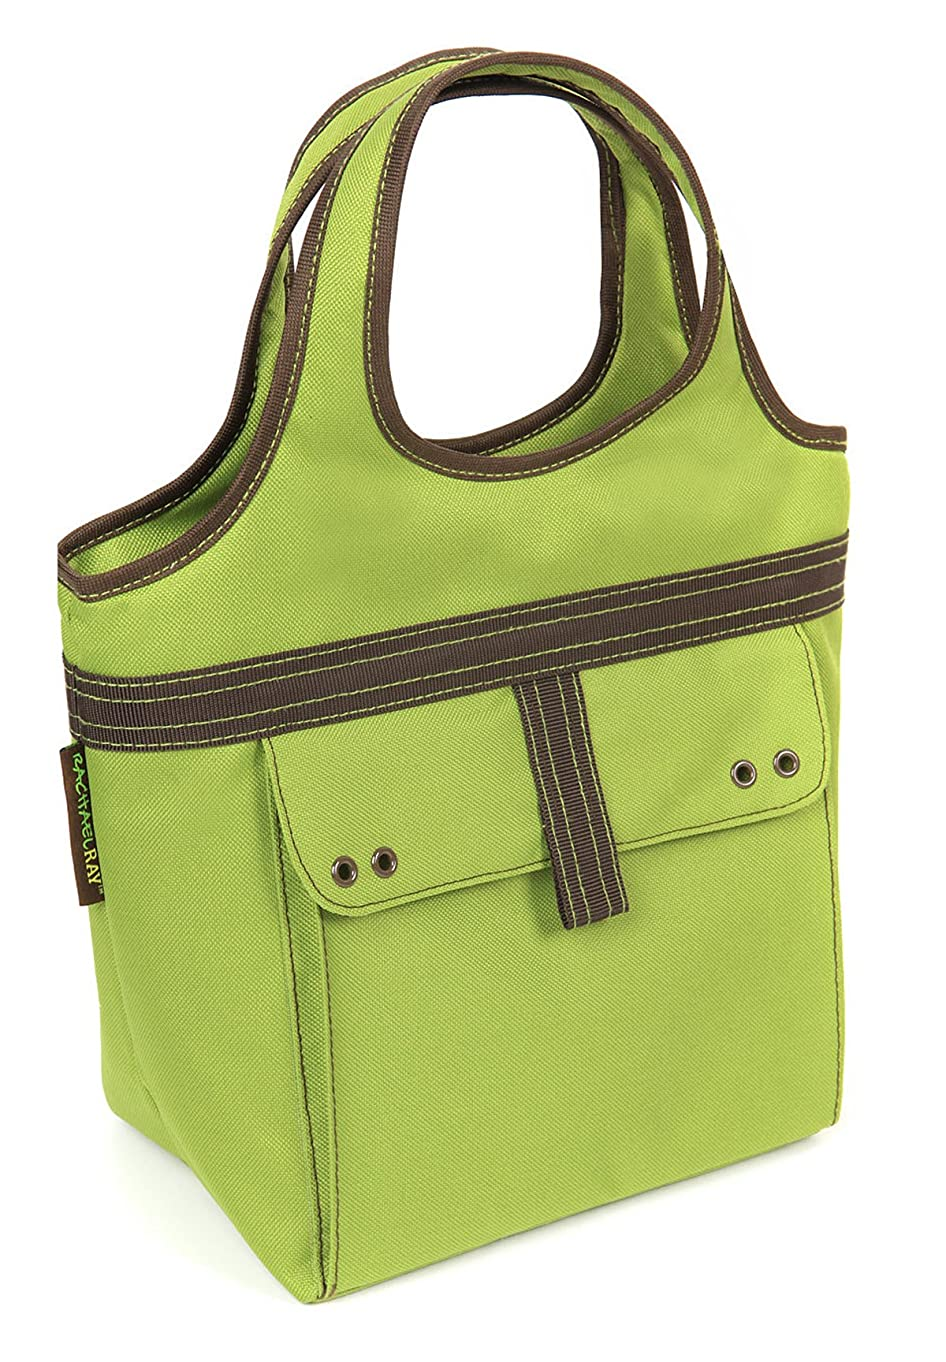 Rachael Ray Tic Tac Tote, Insulated Lunch Bag for Women & Kids, Green